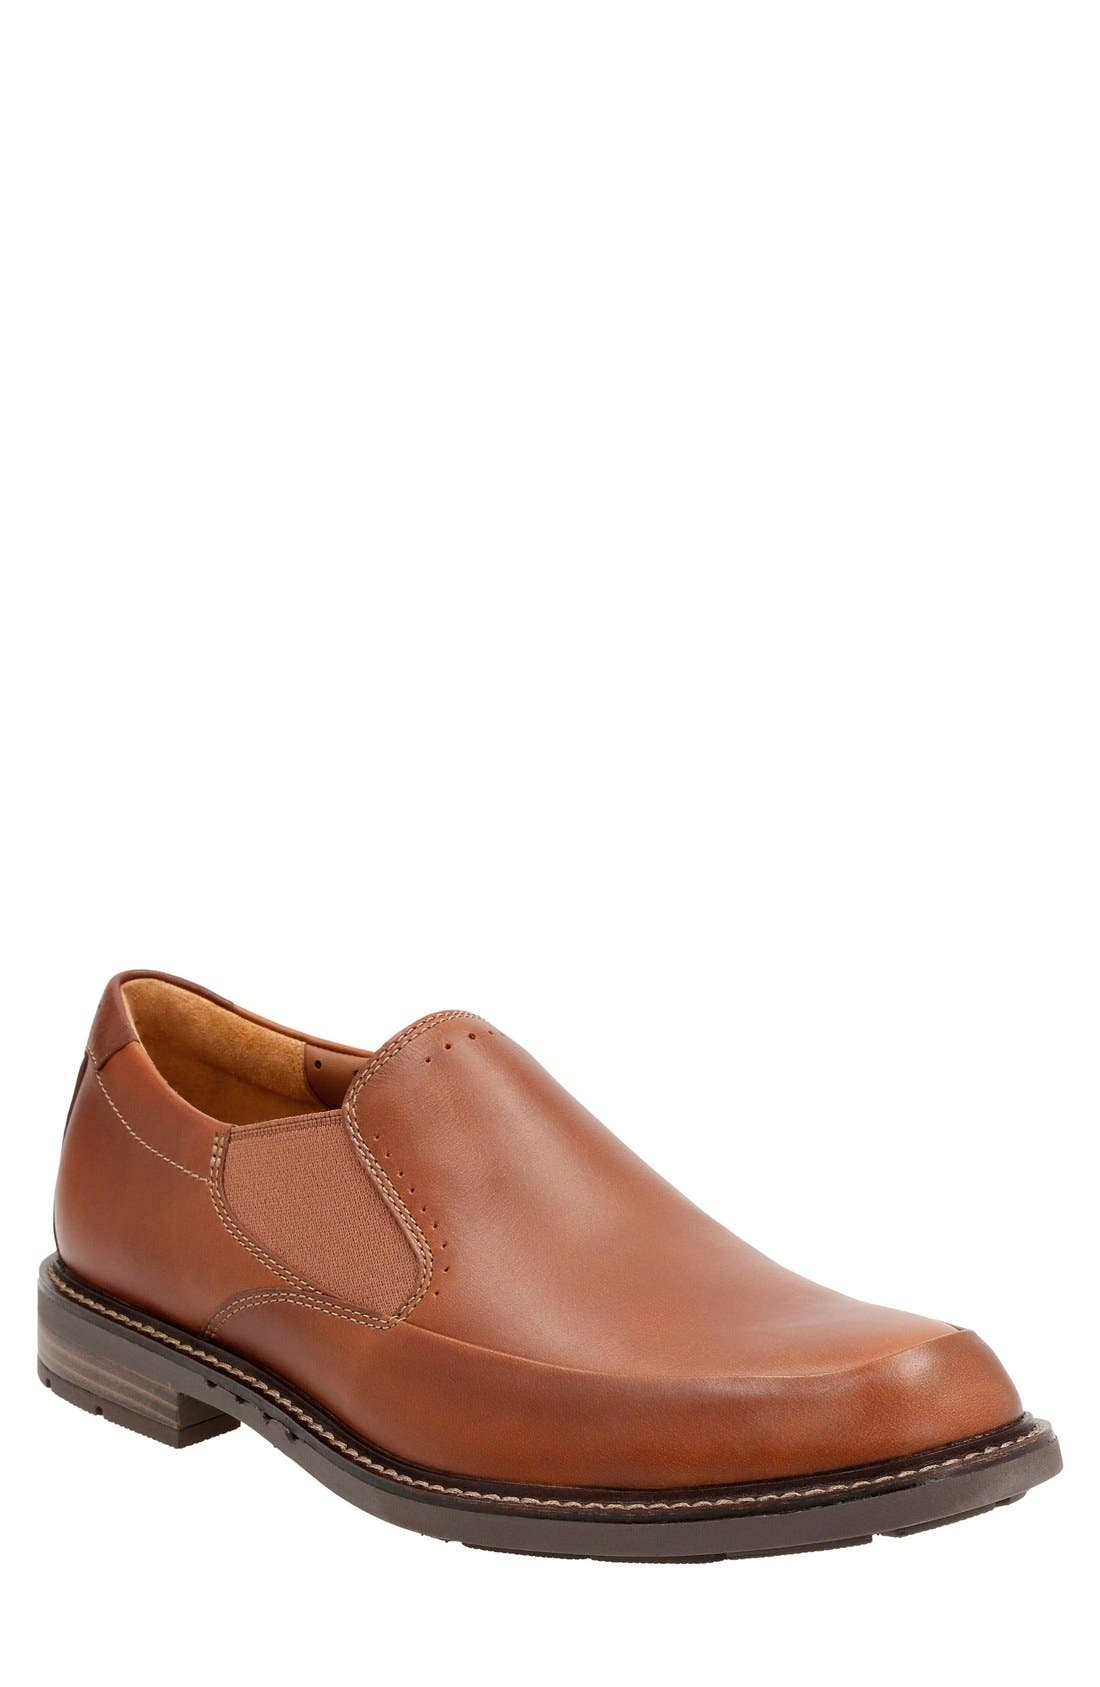 CLARKS® 'Unstructured - Elott' Slip-On